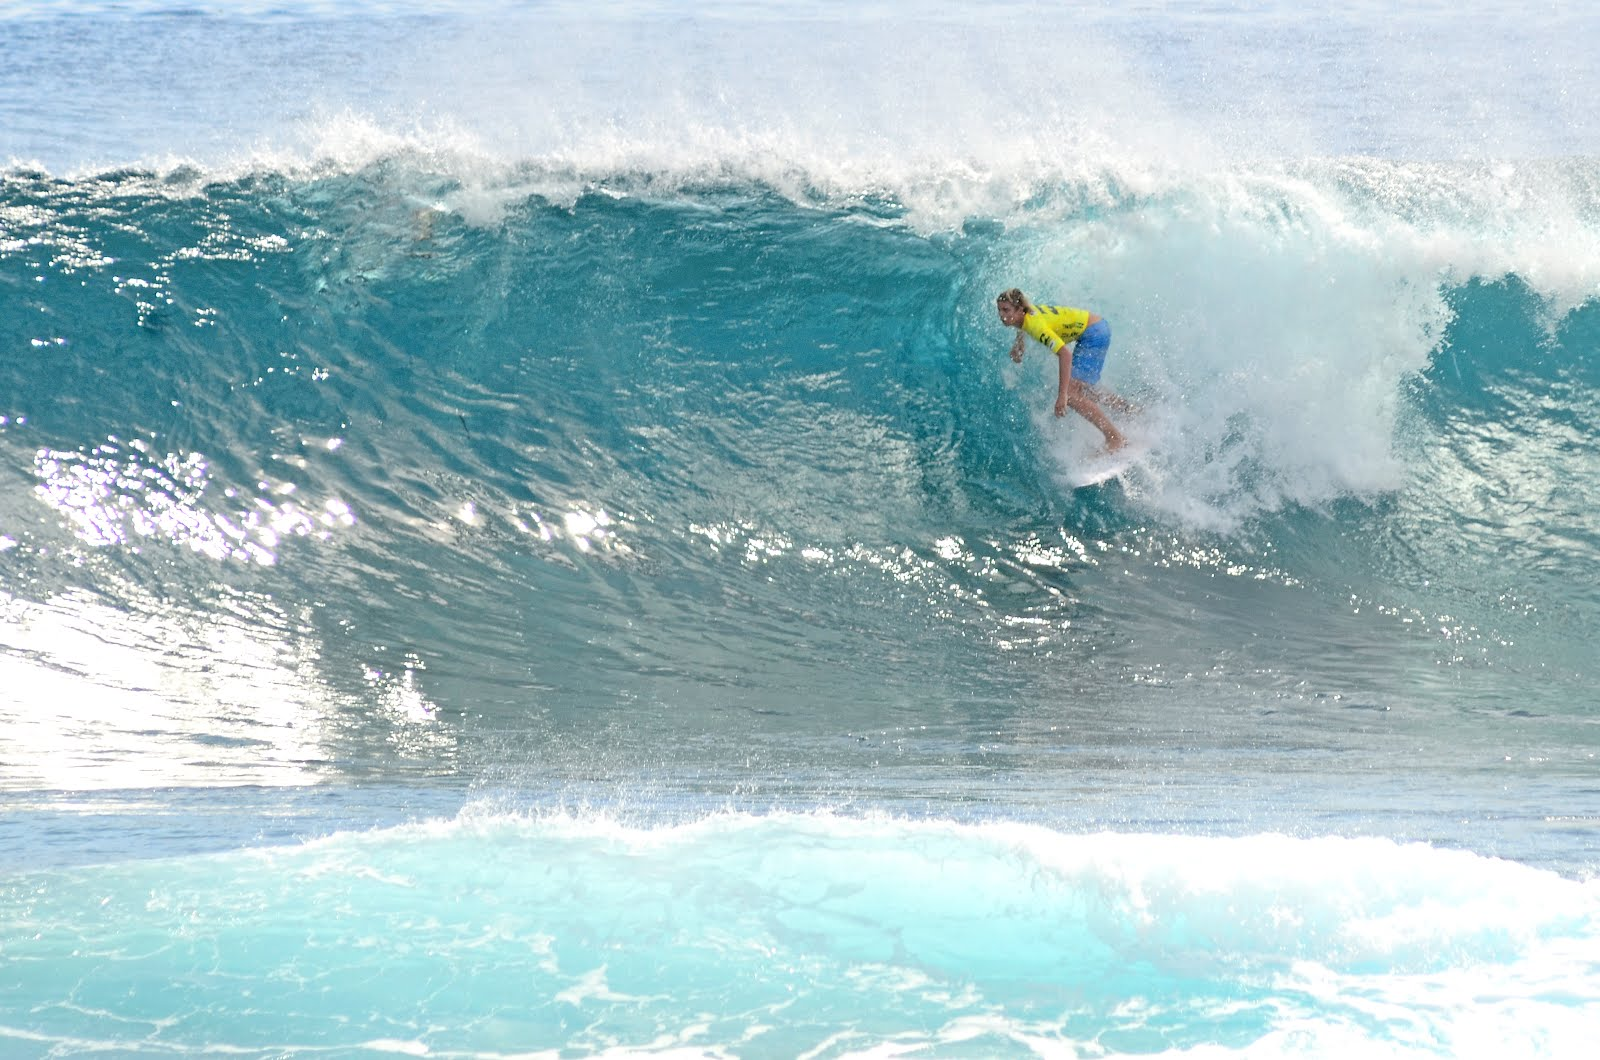 Kermit Siargao Resort: The Best Surf Camp in the Island